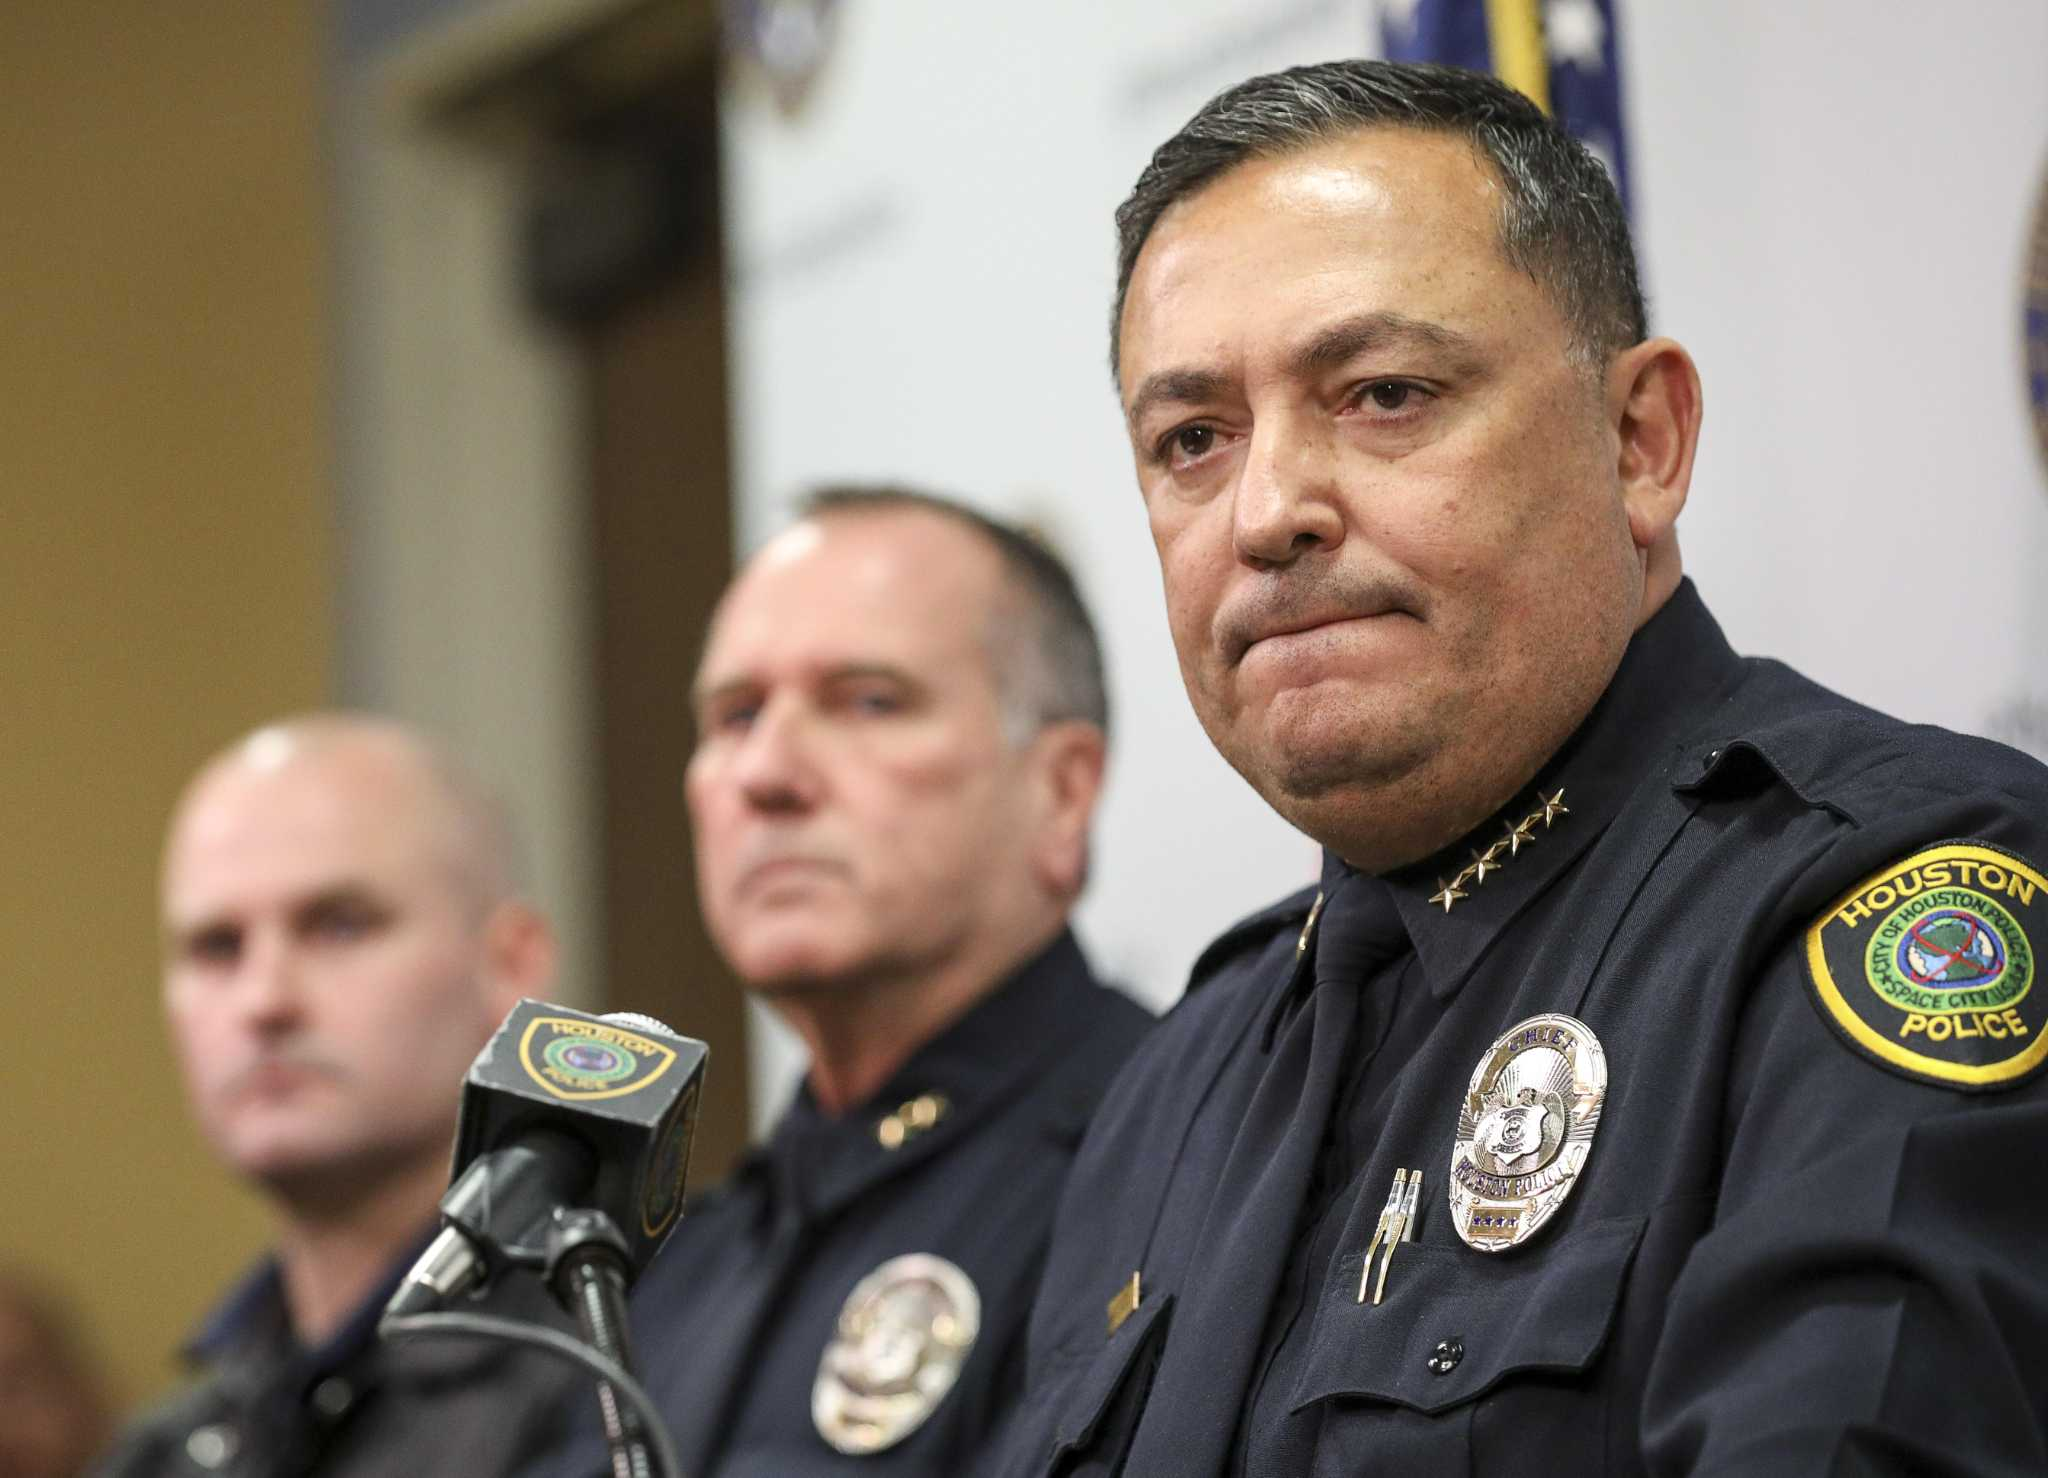 After 69 cases possibly tainted by Goines, HPD chief finally announces sweeping changes